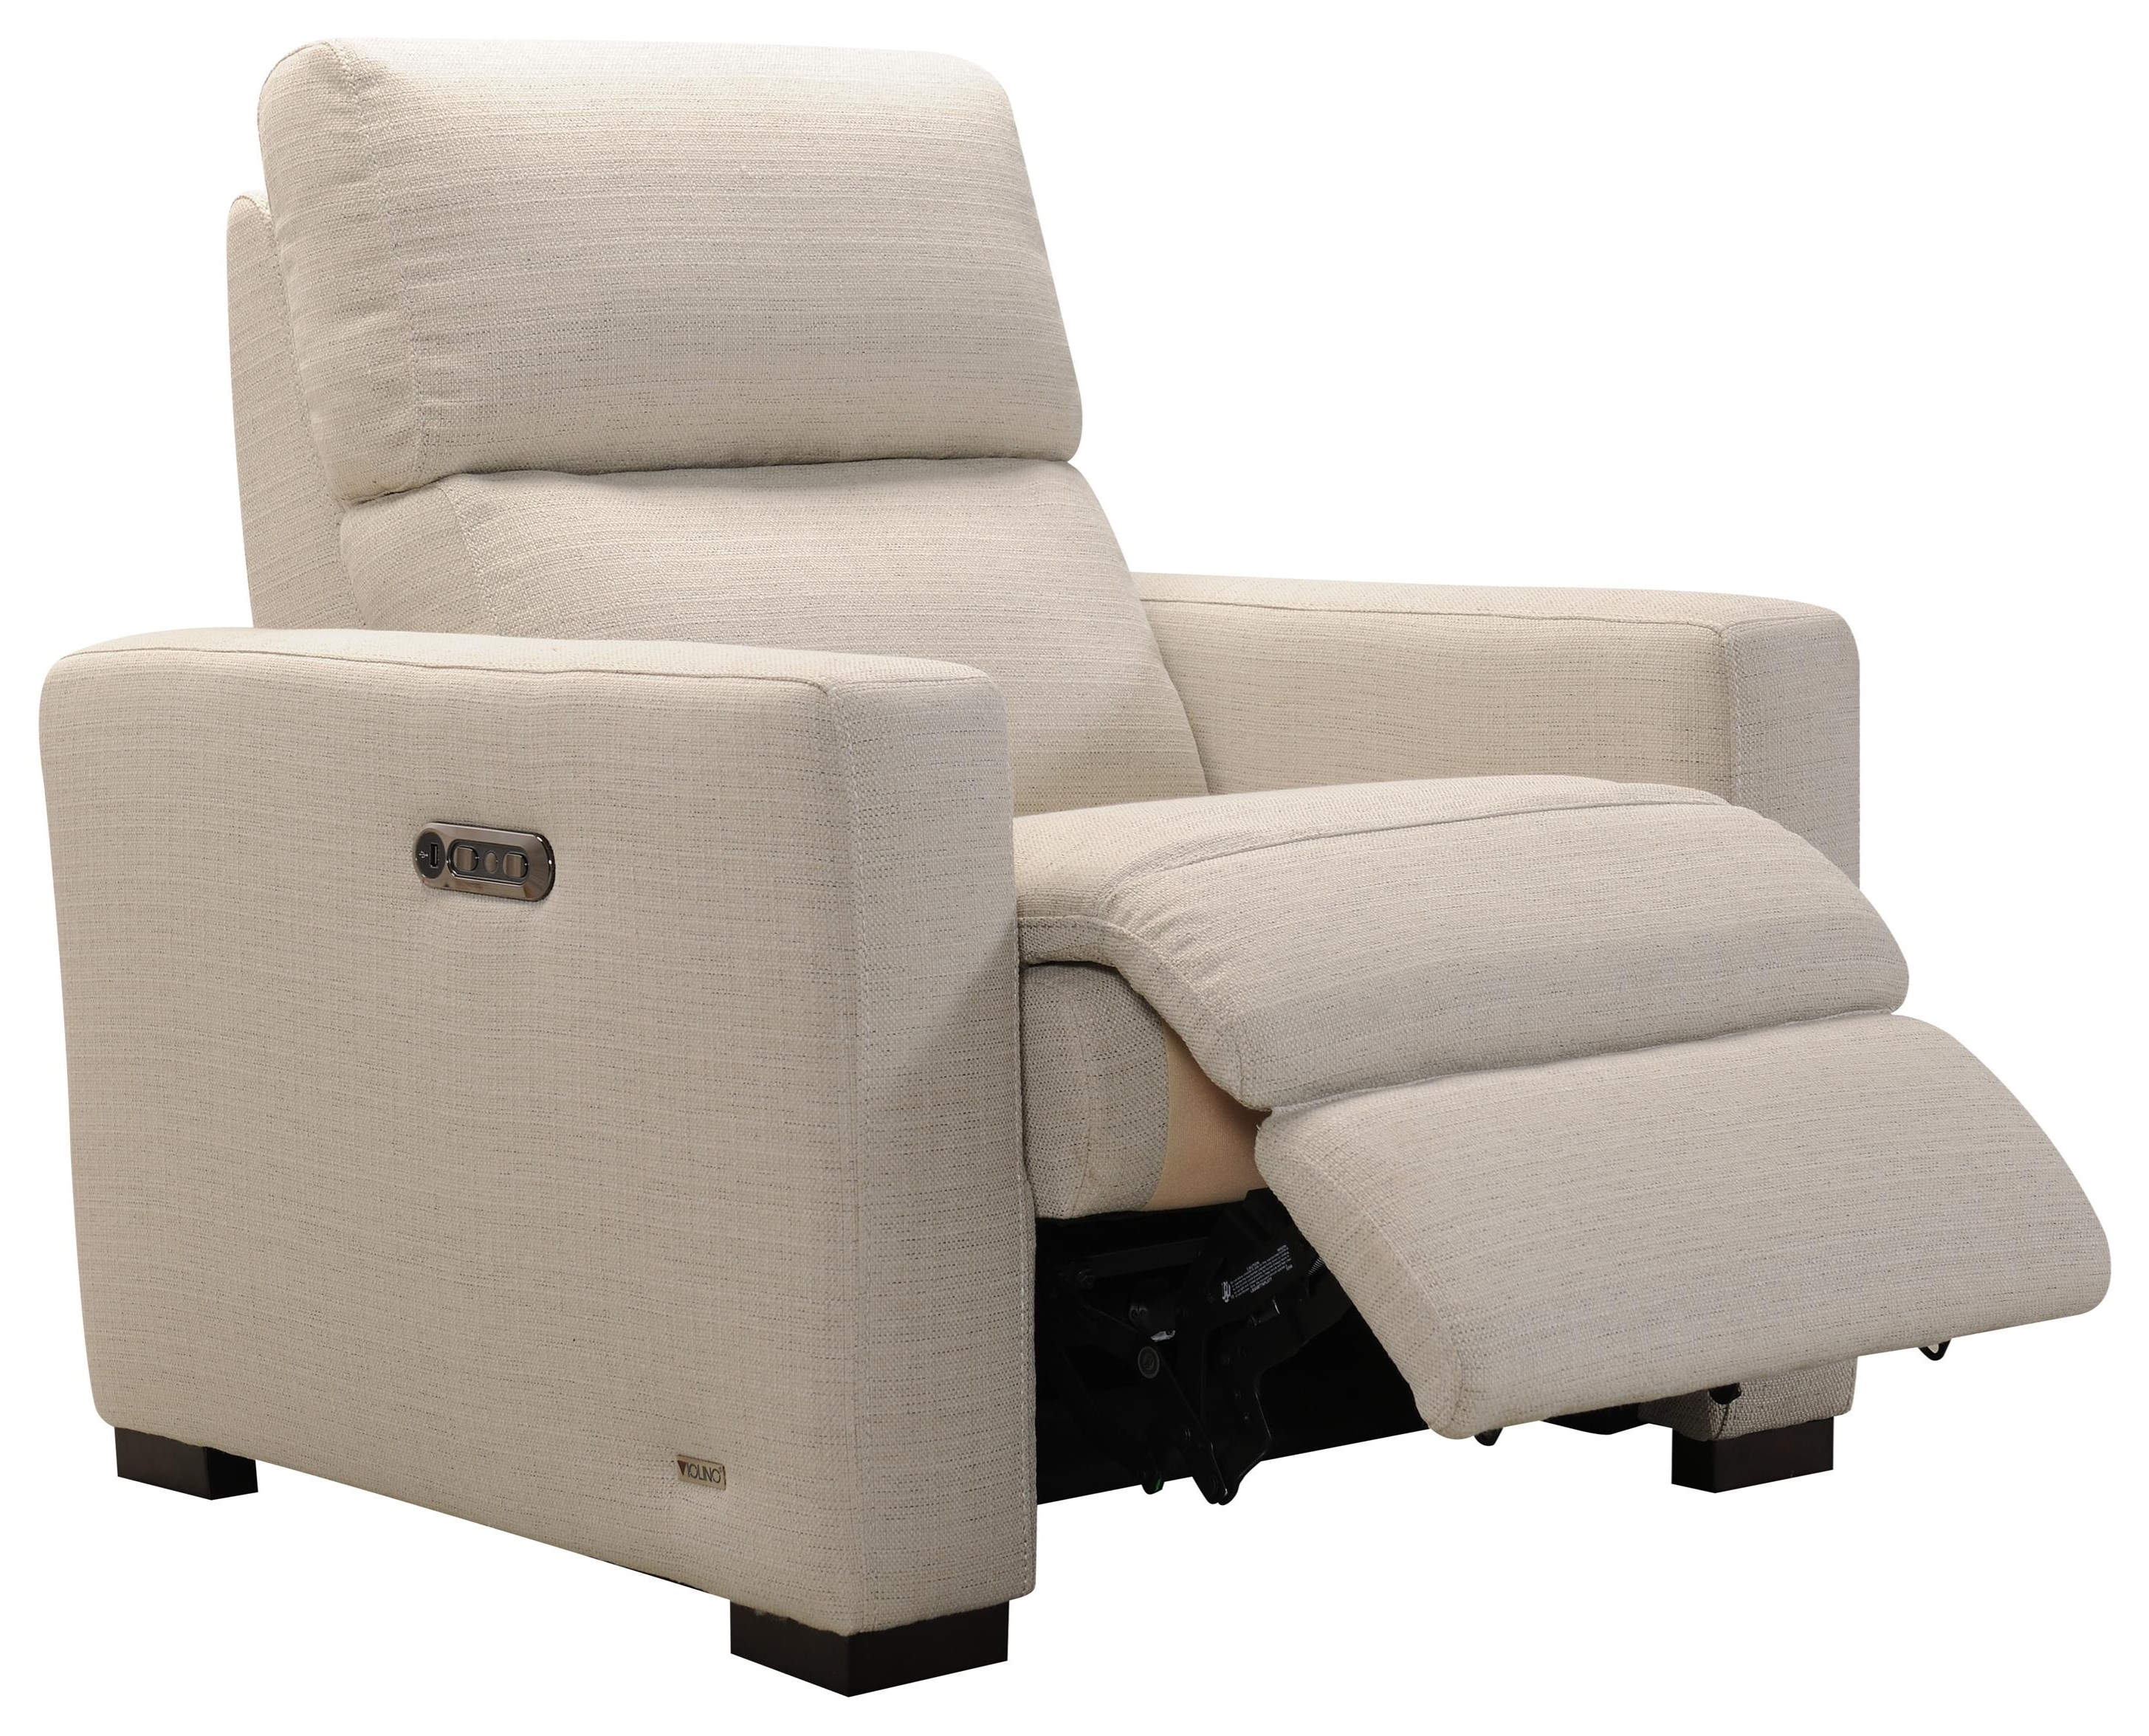 32139 RECLINING CHAIR by Violino at Stoney Creek Furniture